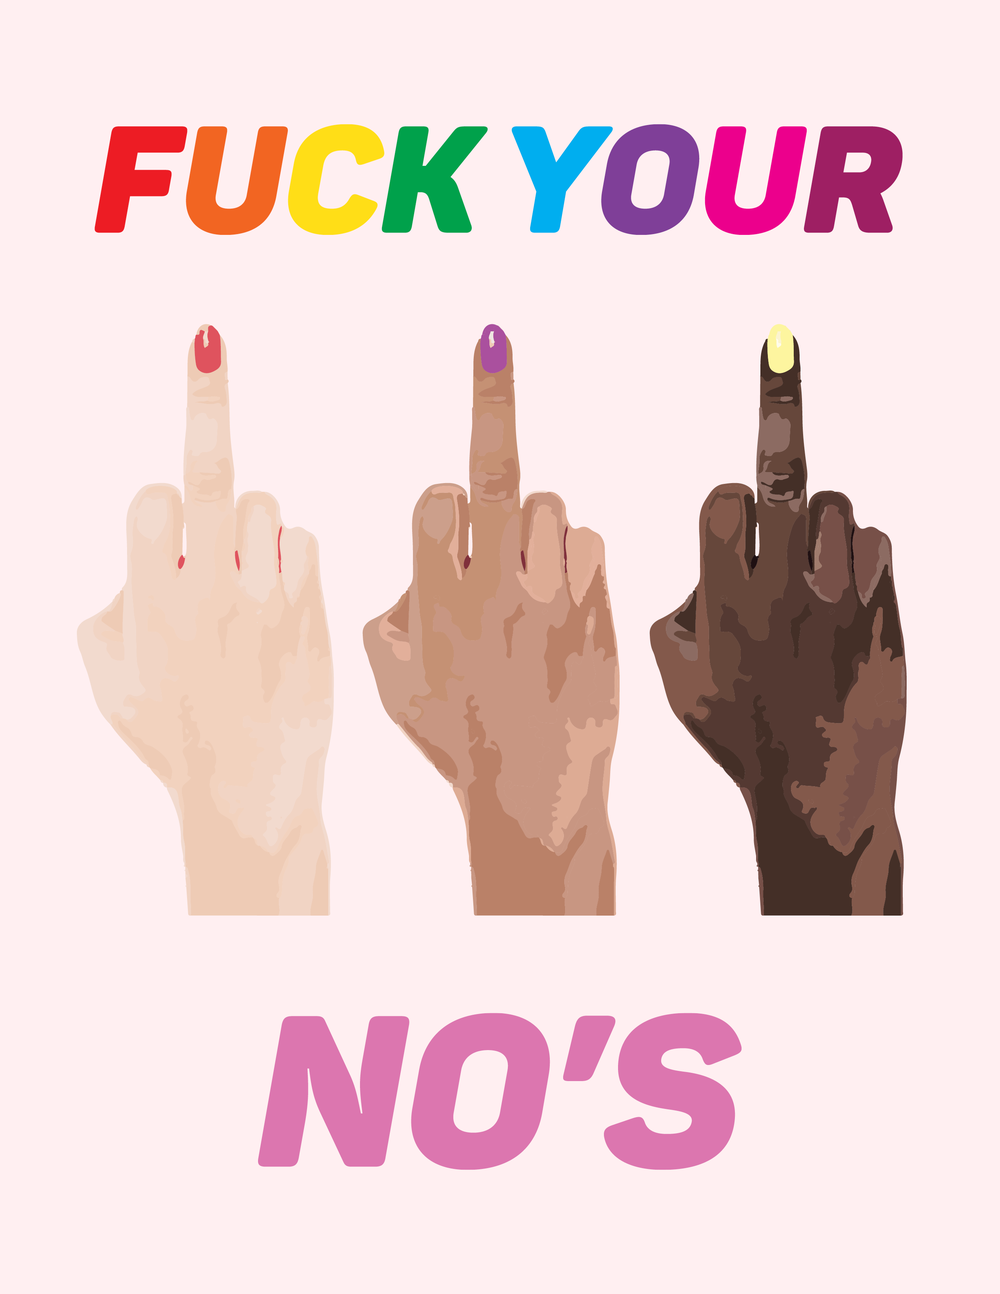 FU nos.png